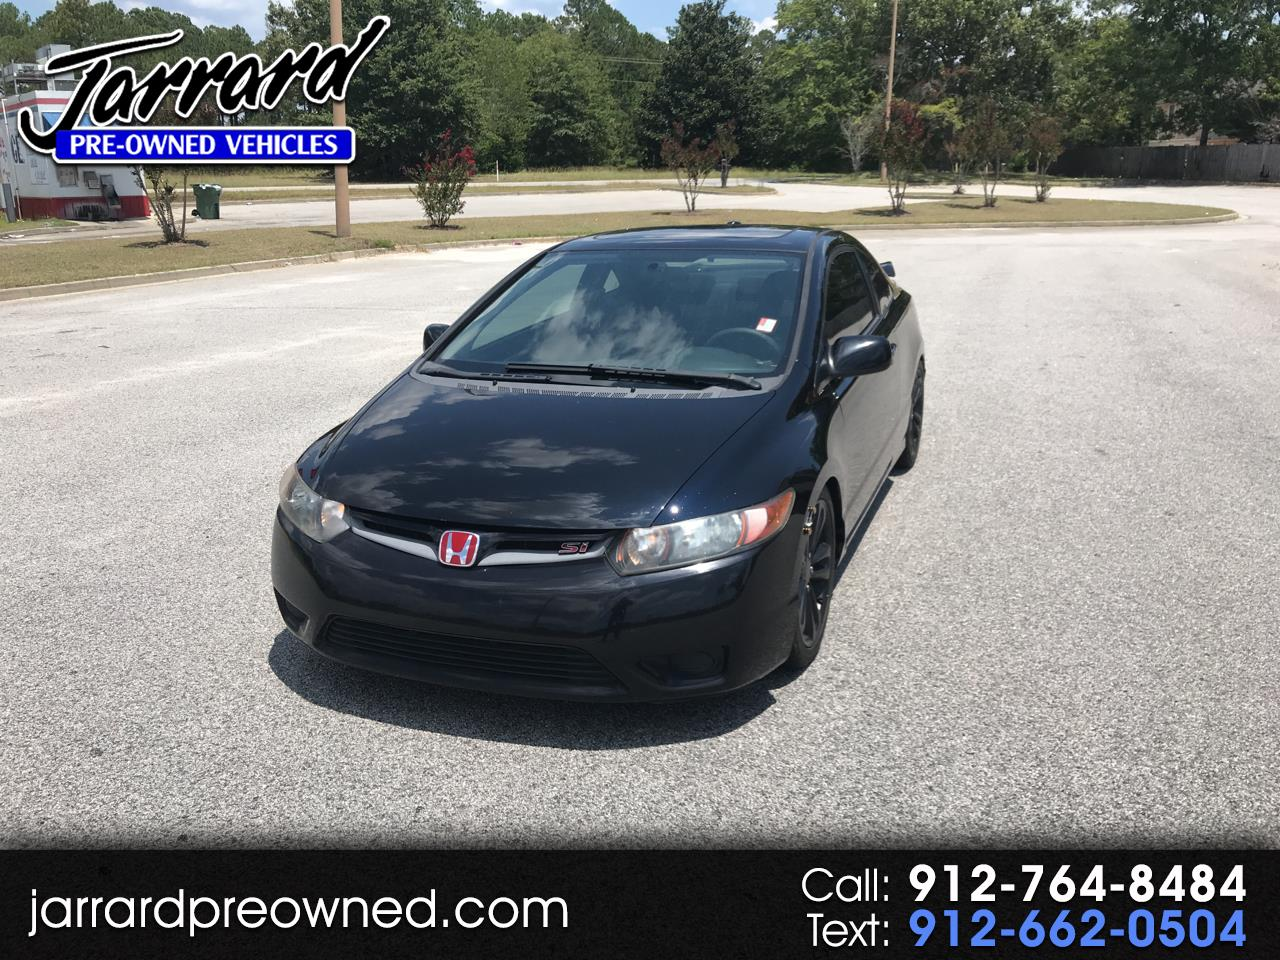 2007 Honda Civic Si 2dr Cpe Manual